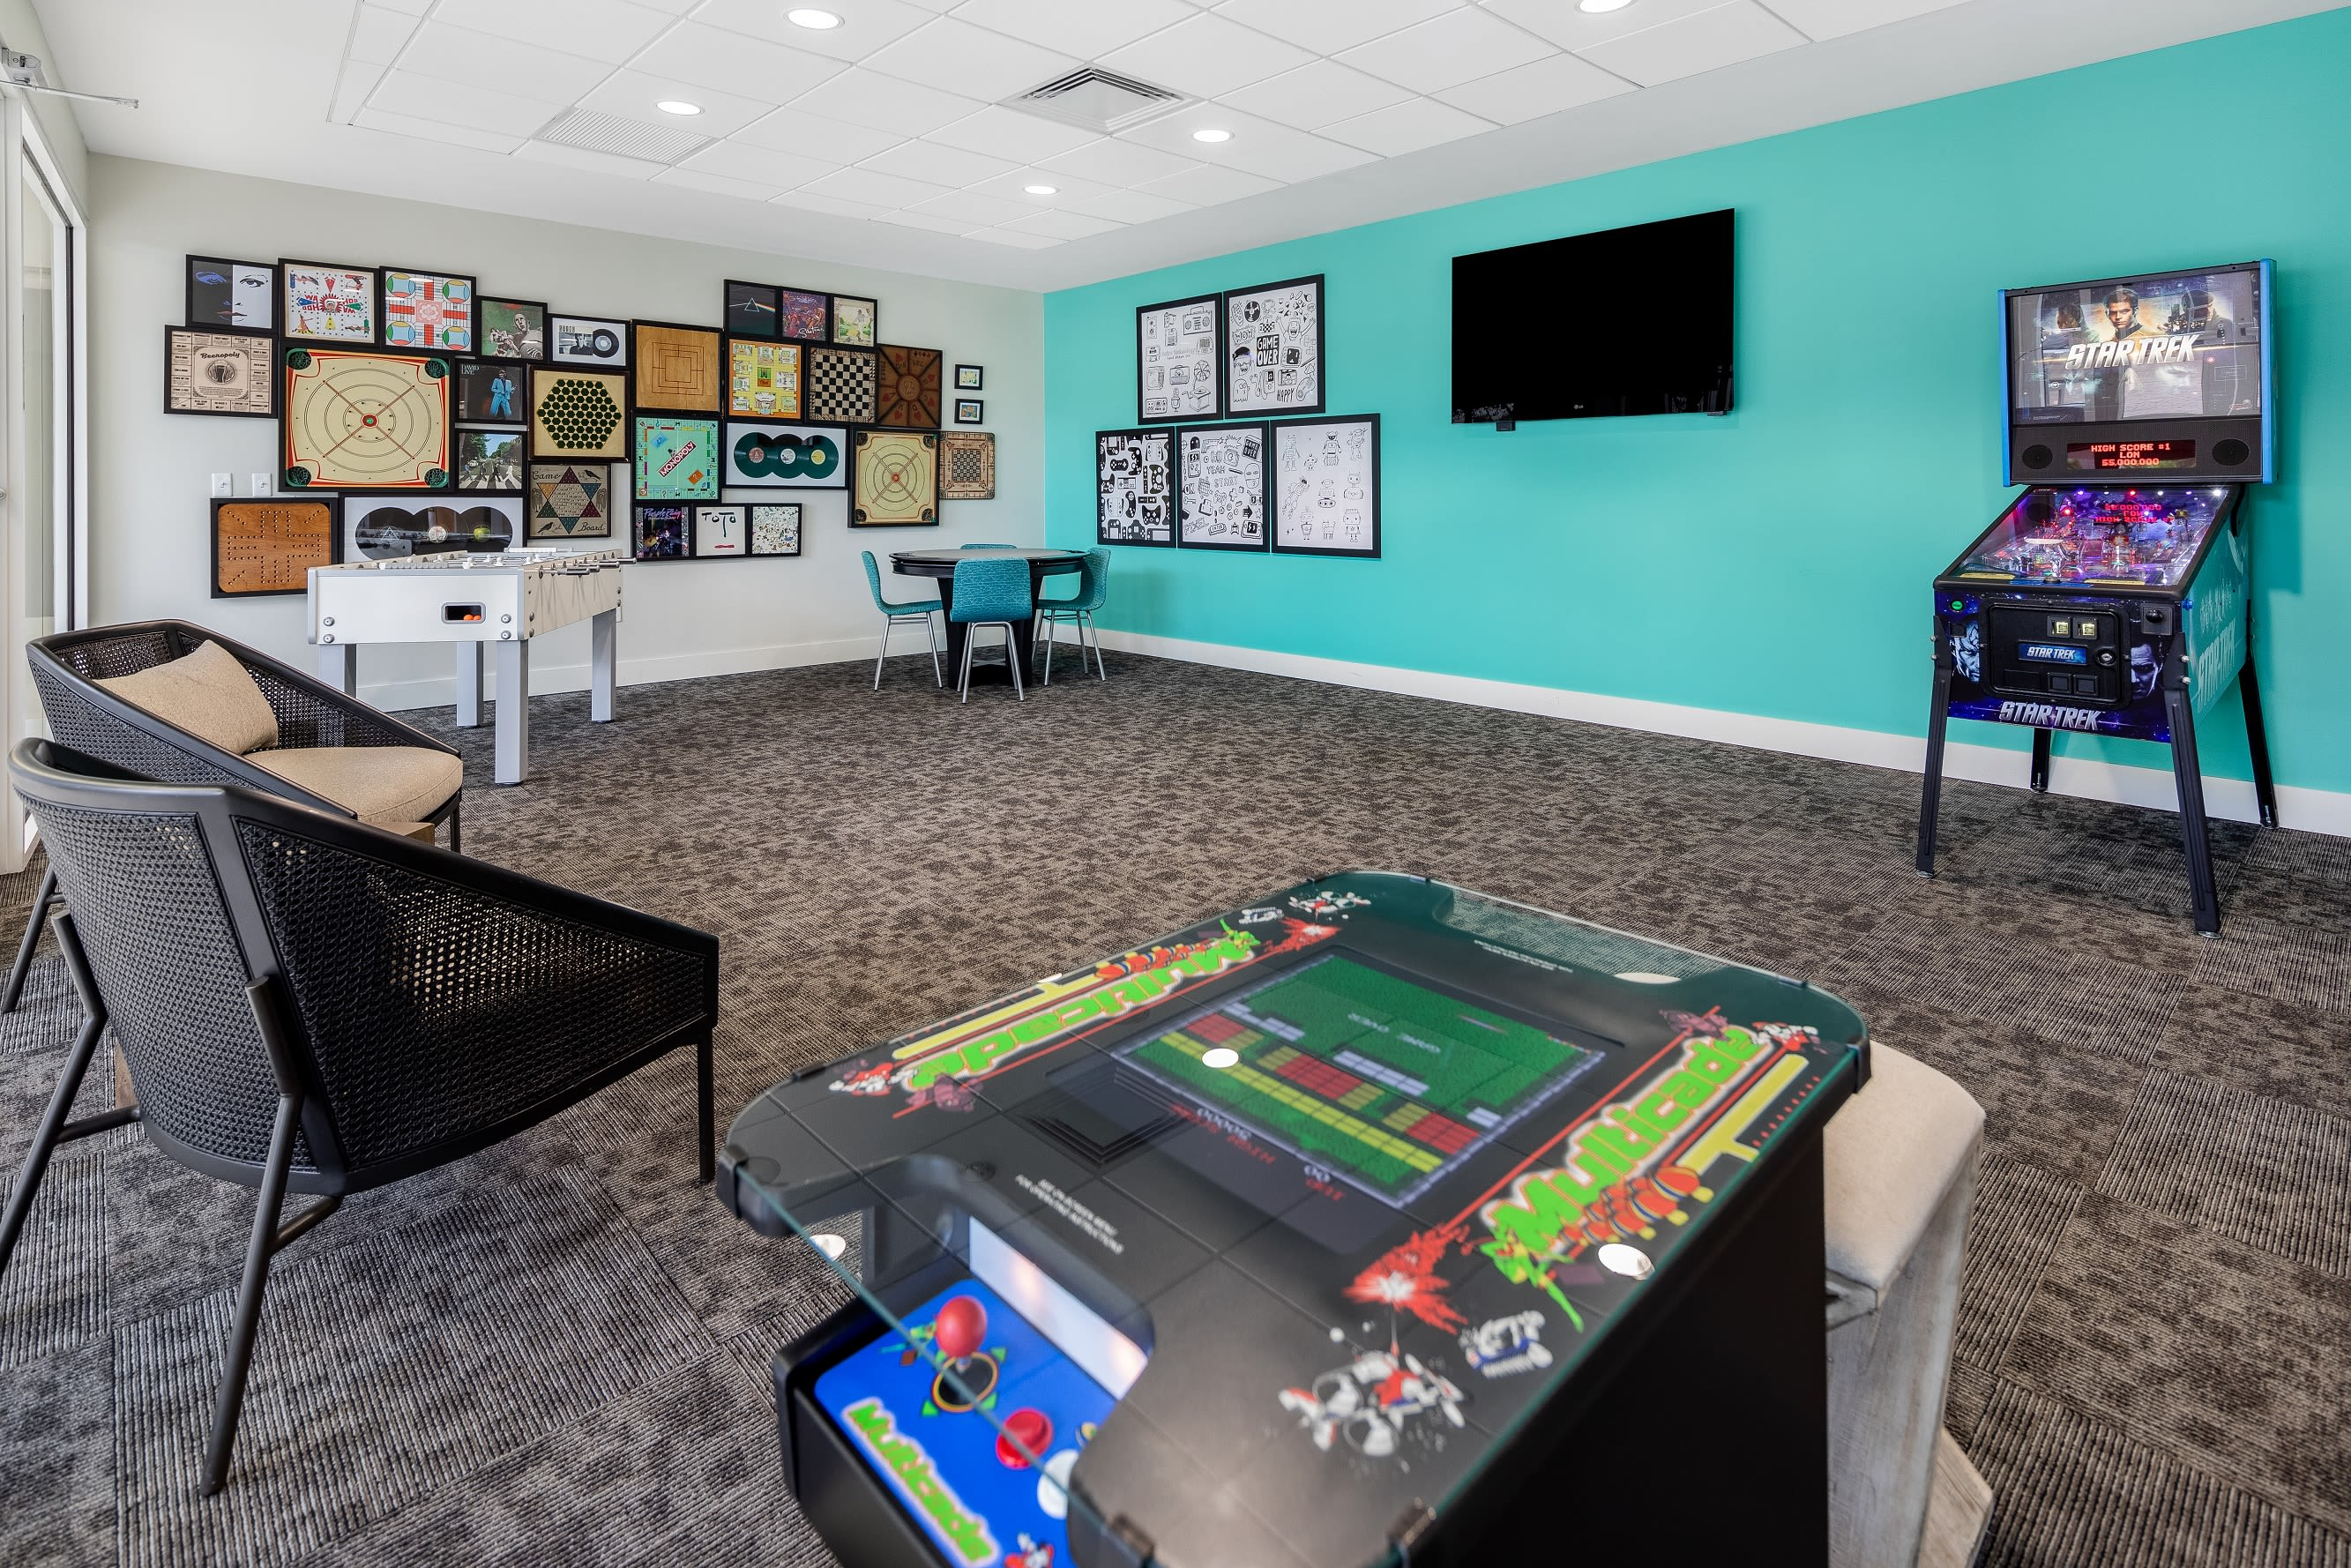 Fitness center with plenty of individual work stations at Midtown 24 in Plantation, Florida